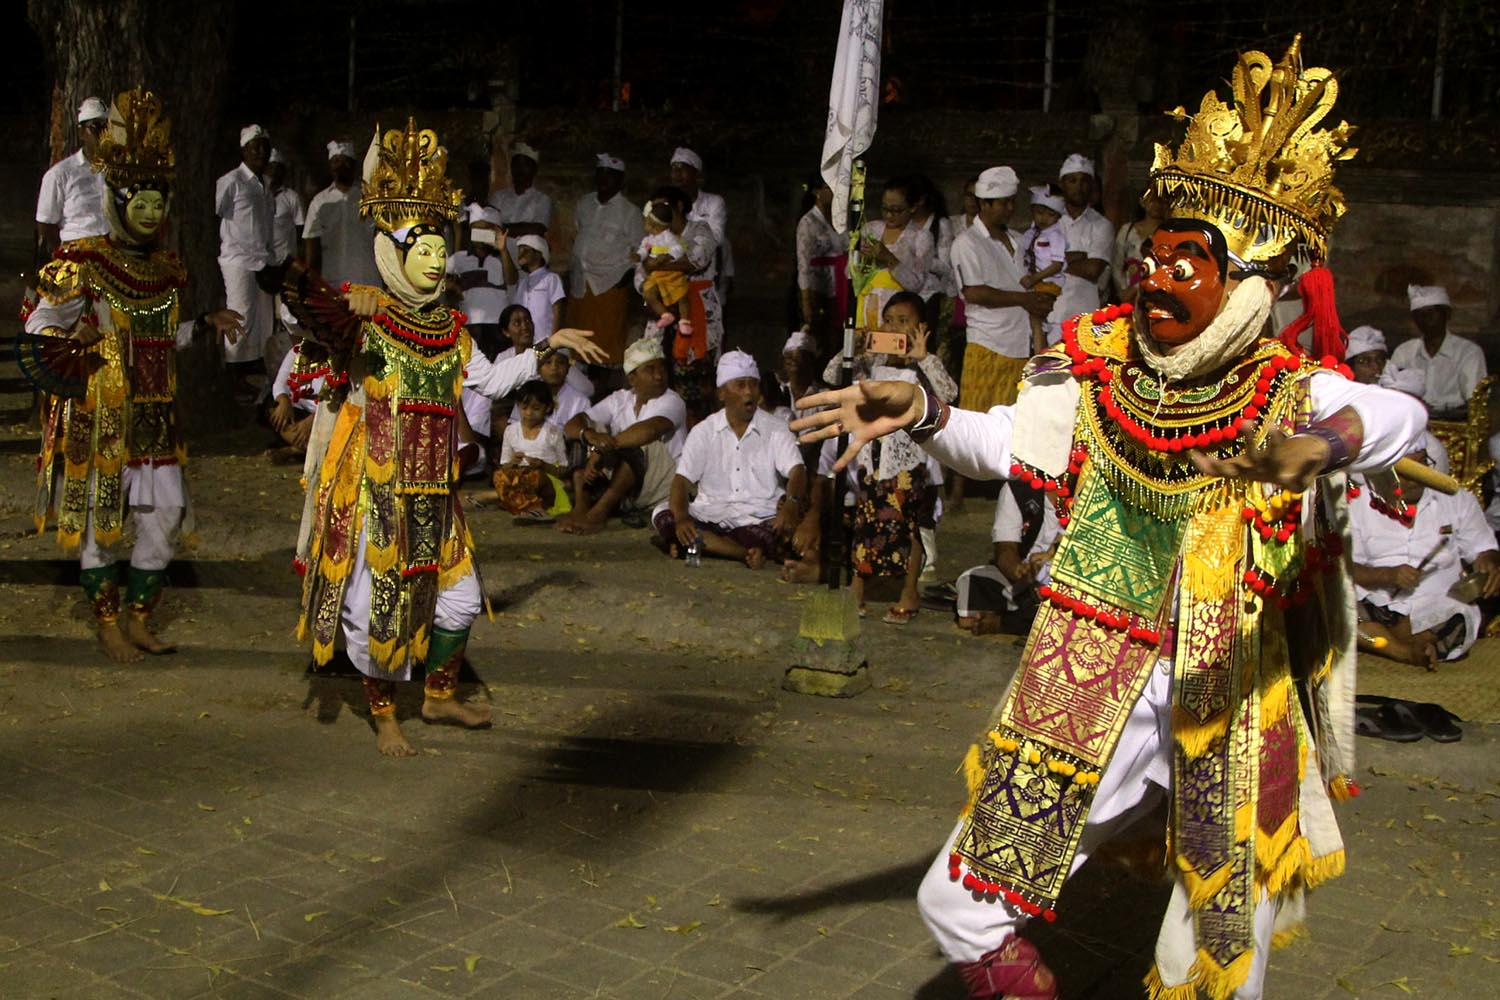 Dancers perform the sacred sandar and telek dances before taking part in the mesiat geni tradition. JP/Zul Trio Anggono